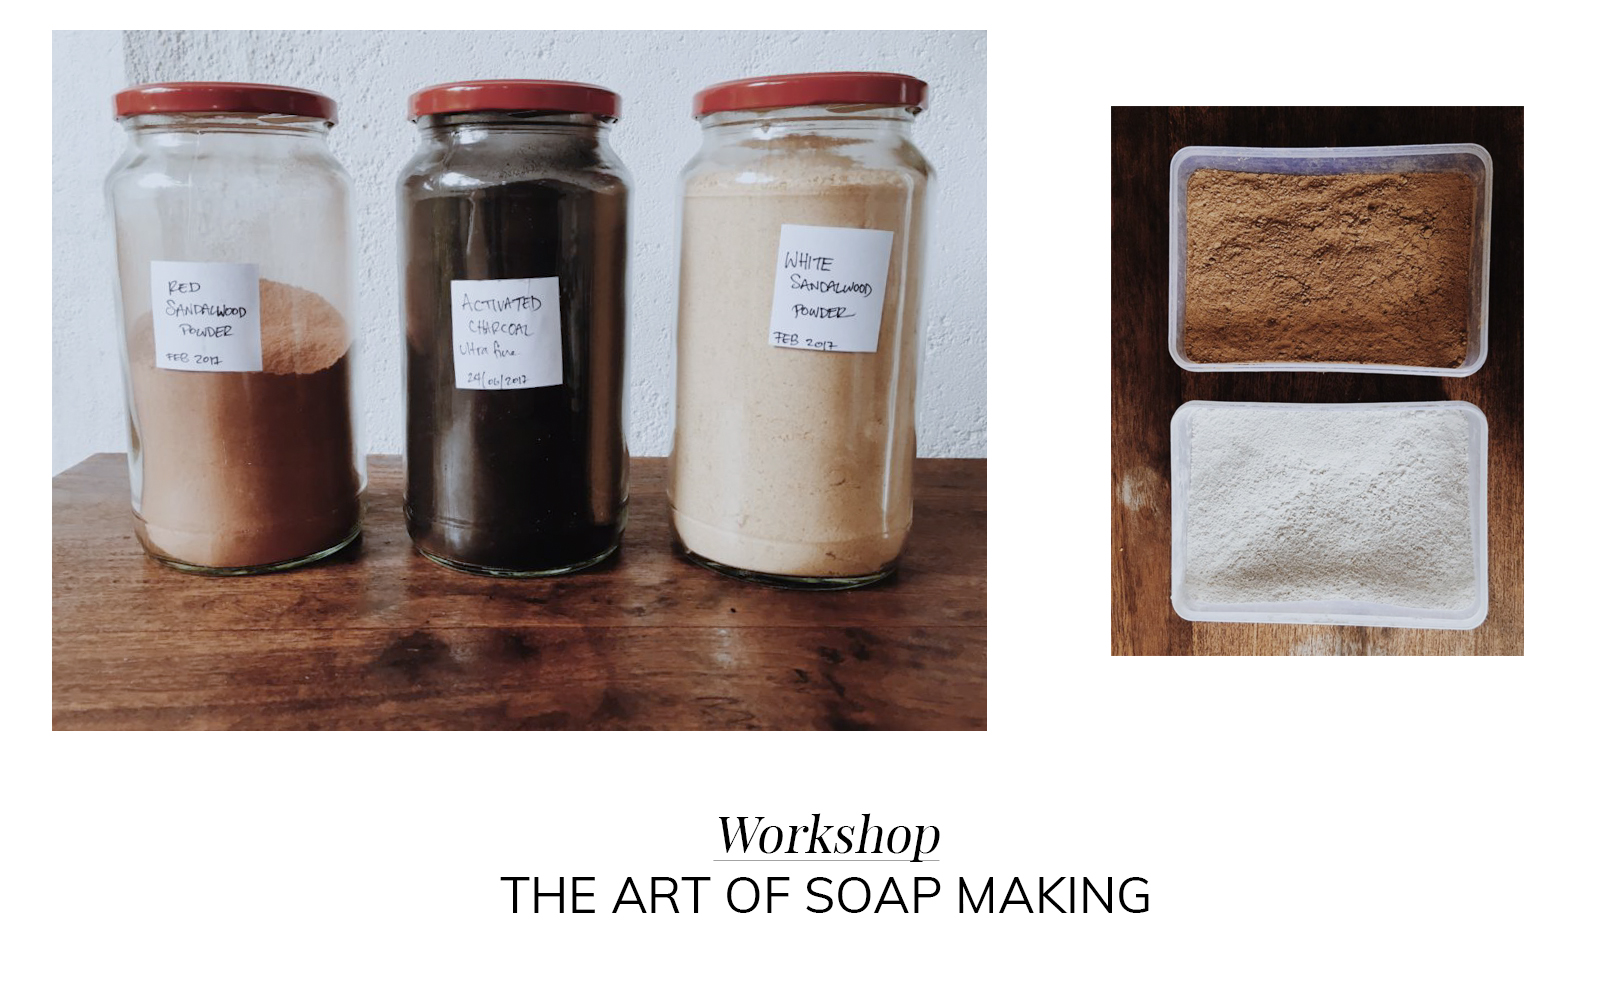 Ceylon Sliders Workshop – Soap Making